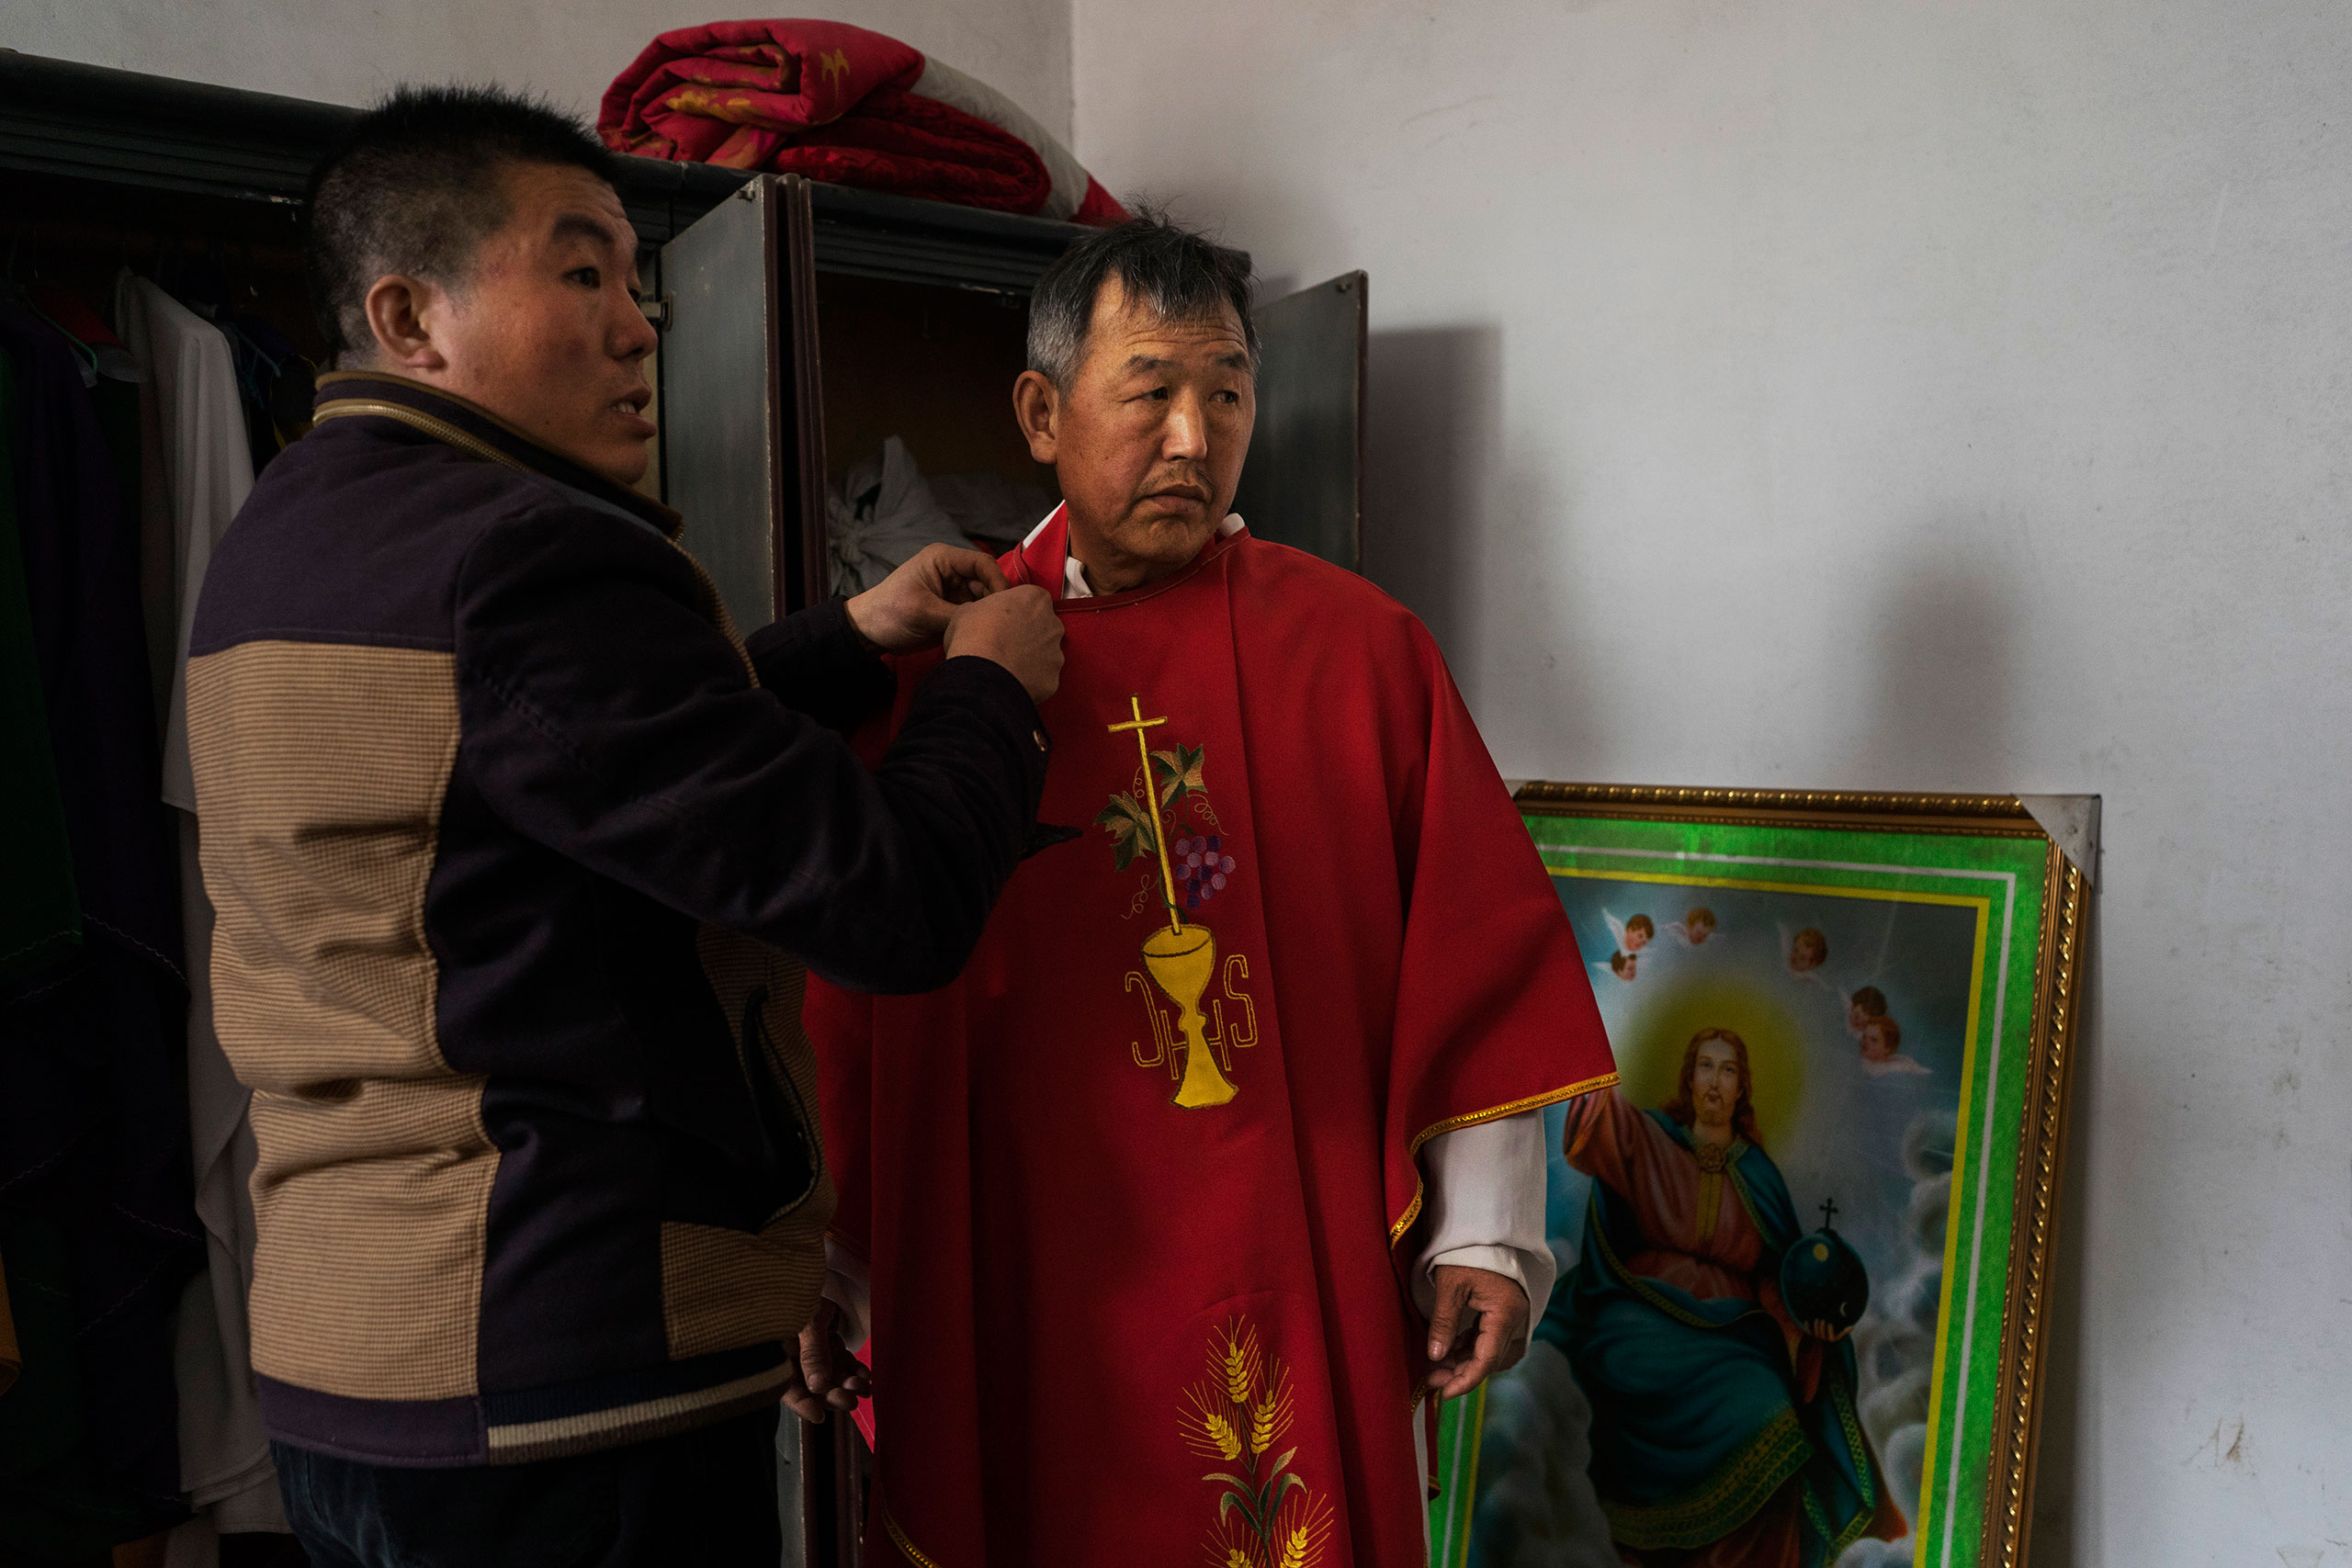 Dong Baolu, a dissident Catholic priest, is helped to dress ahead of a Palm Sunday service at an underground church service in the yard of a house in Youtong village, Shijiazhuang, China, March 20, 2016.